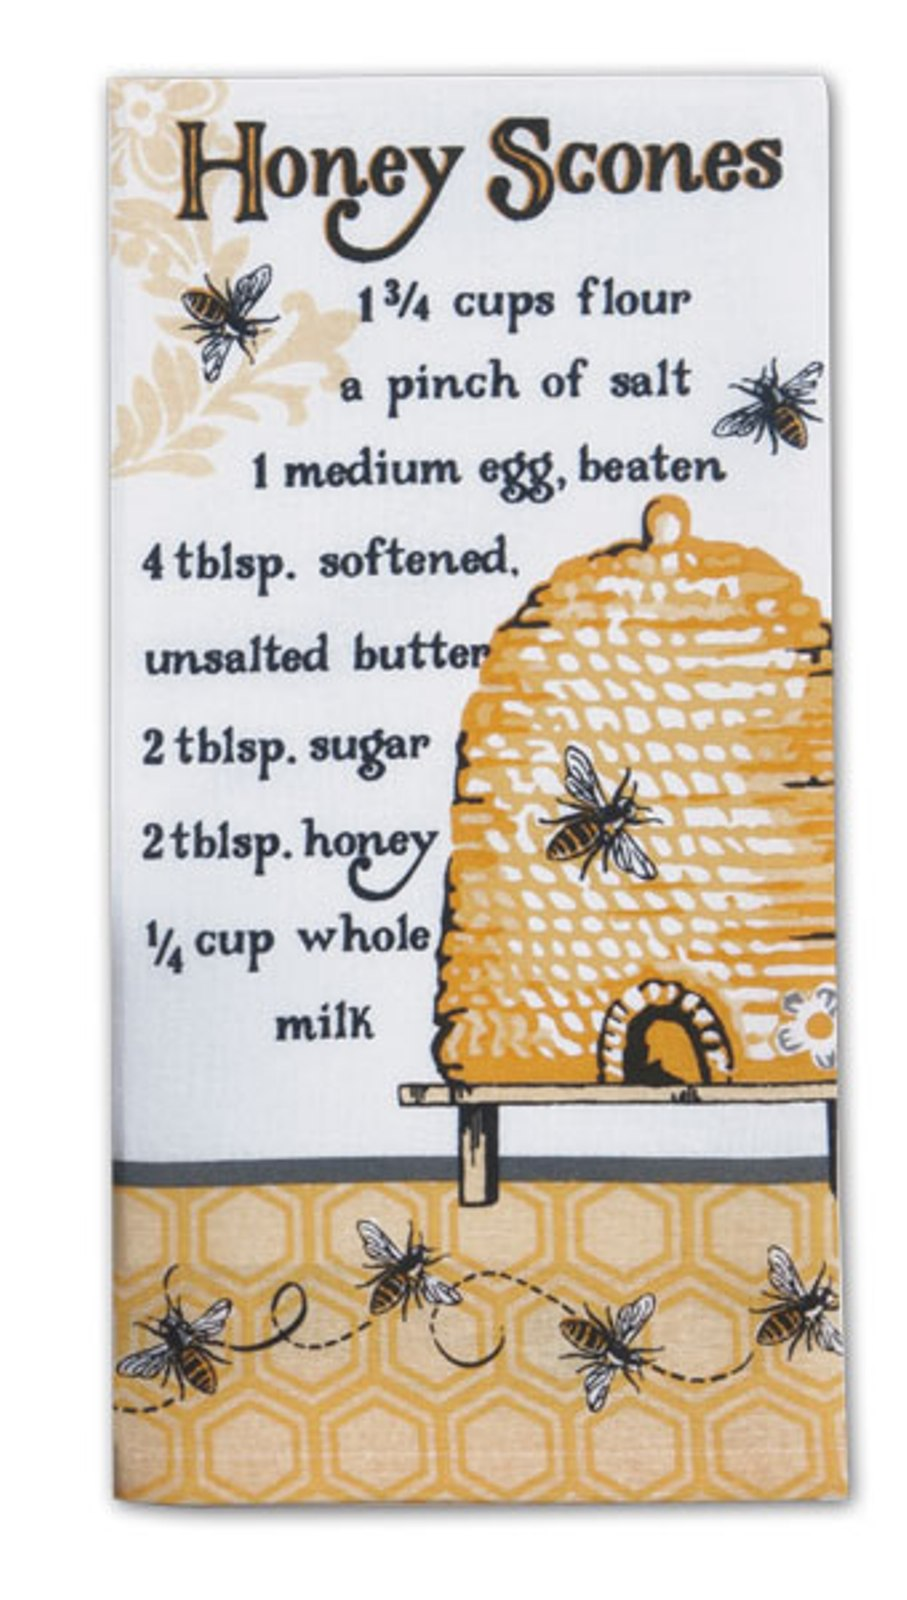 Bee Hive Honey Scones Recipe Flour Sack Kitchen Dish Towel Cotton by Kay Dee